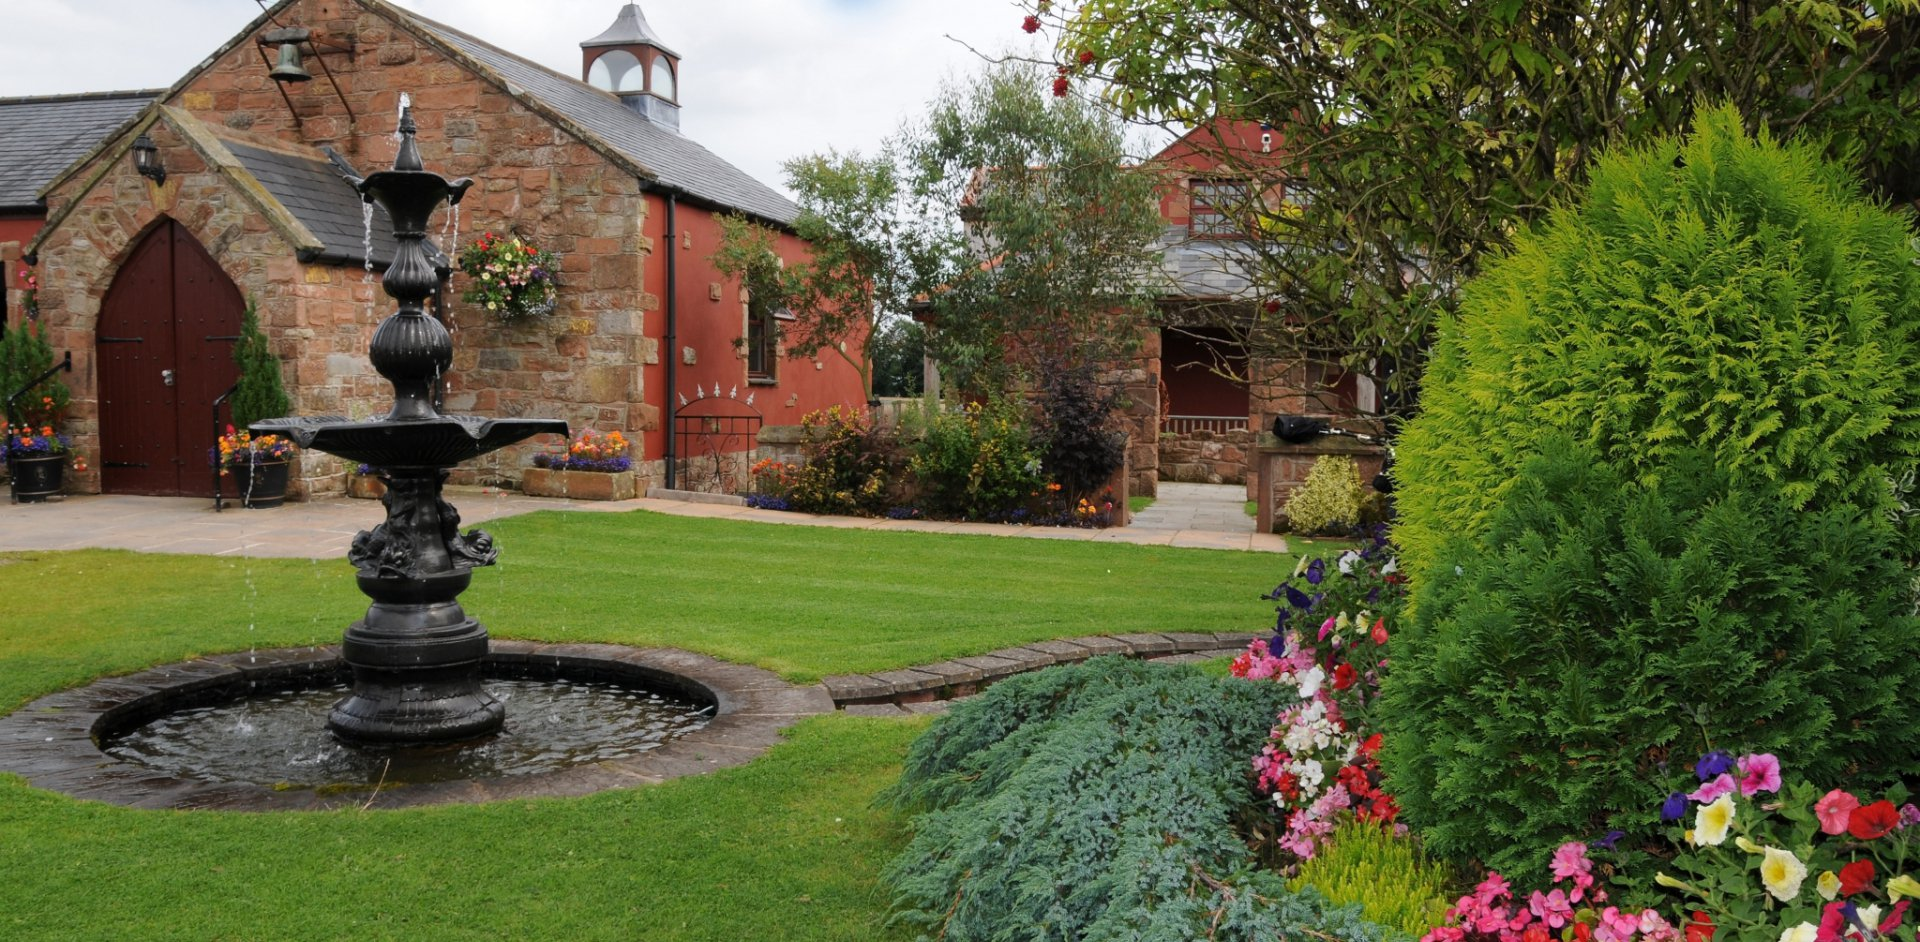 Unique Places to Get Married - The Mill Forge Hotel near Gretna Green